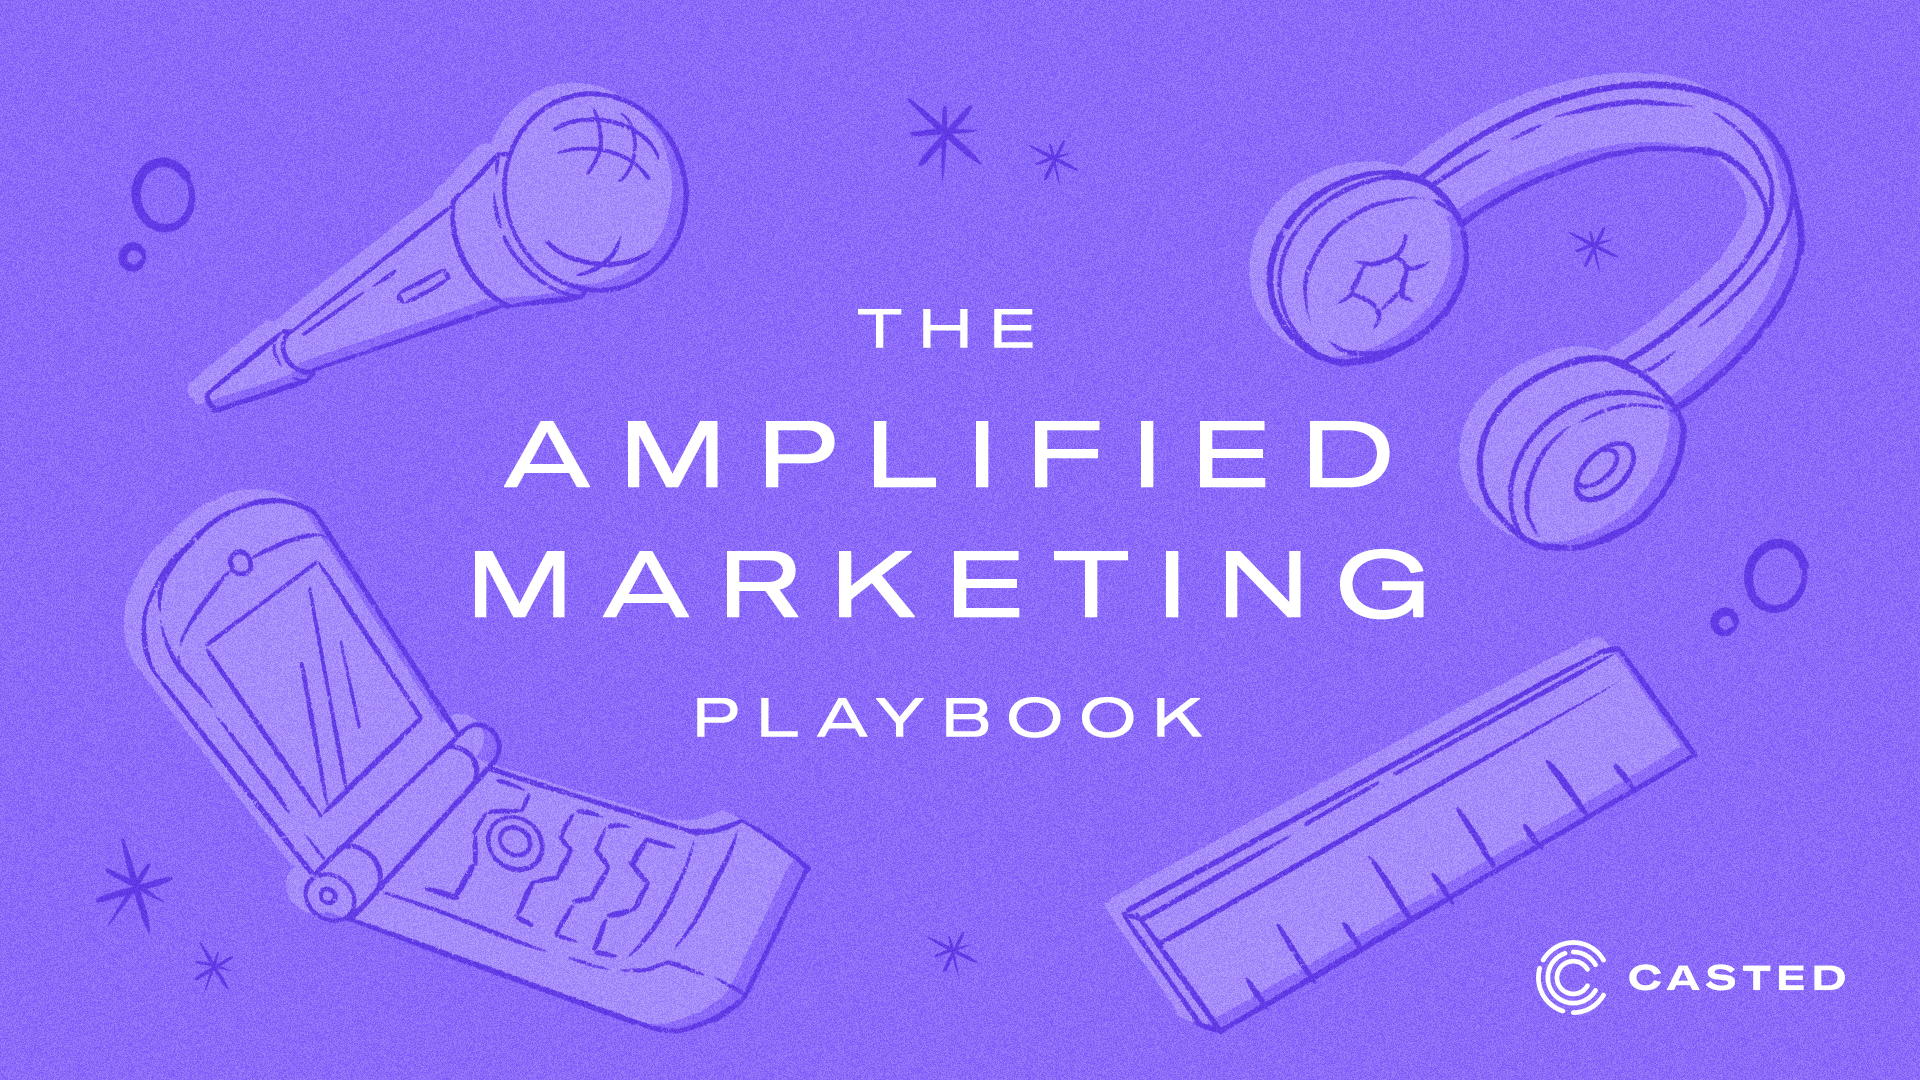 The Amplified Marketing Playbook: The Next Generation of Content Marketing